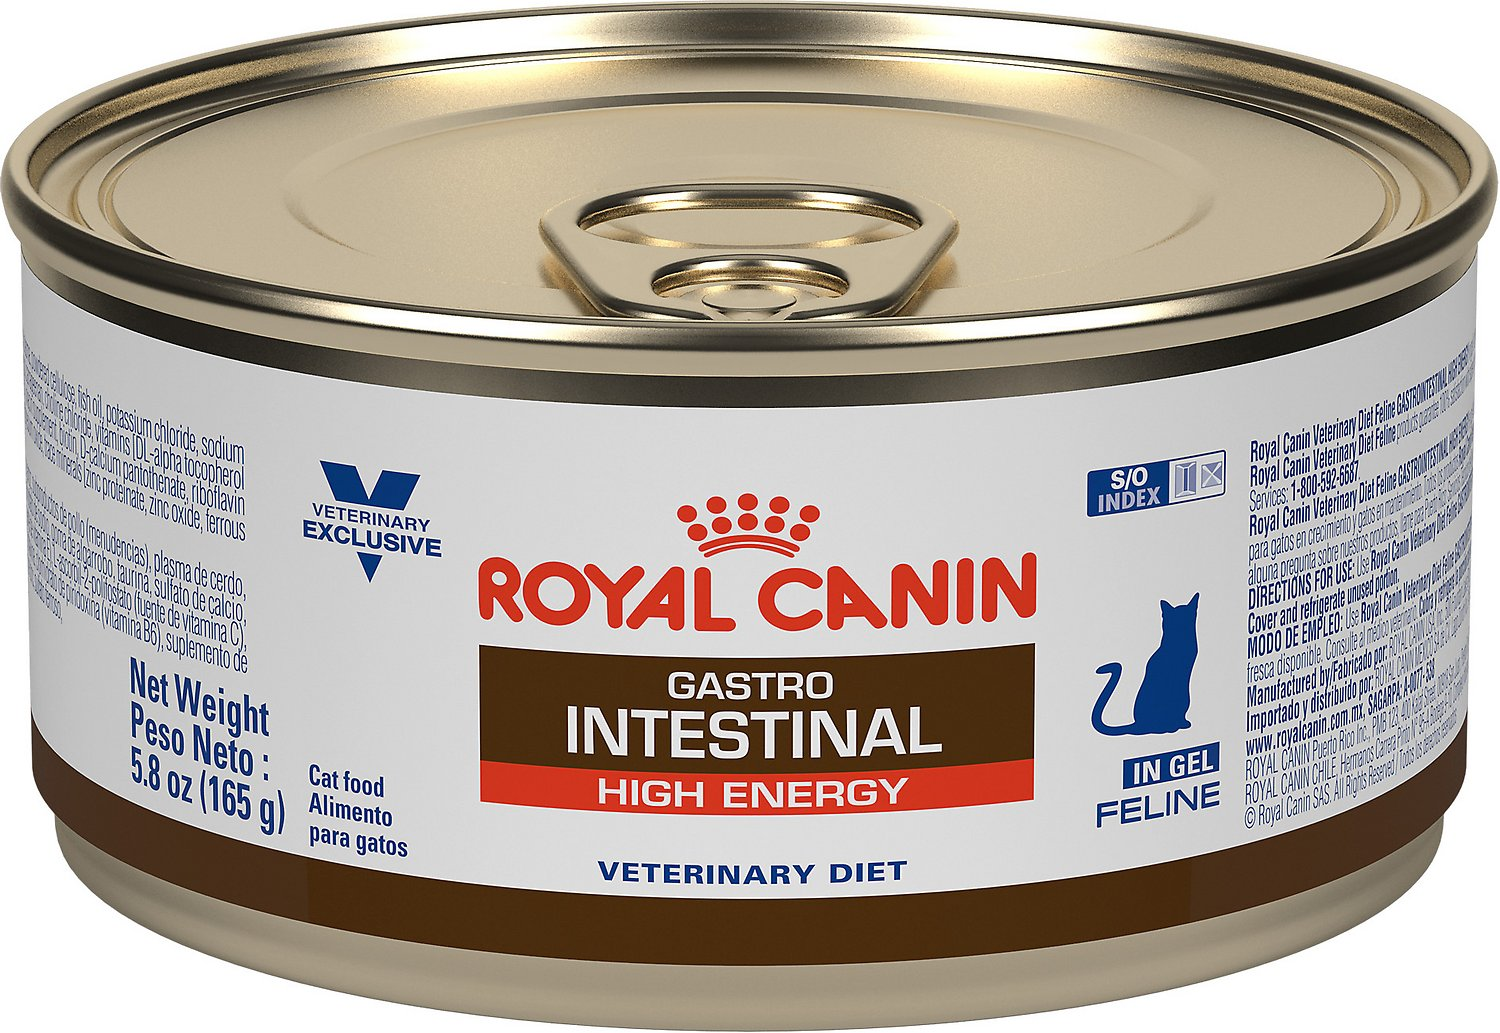 Royal Canin Veterinary Diet Gastrointestinal High Energy Canned Cat Food,  5 8-oz, case of 24